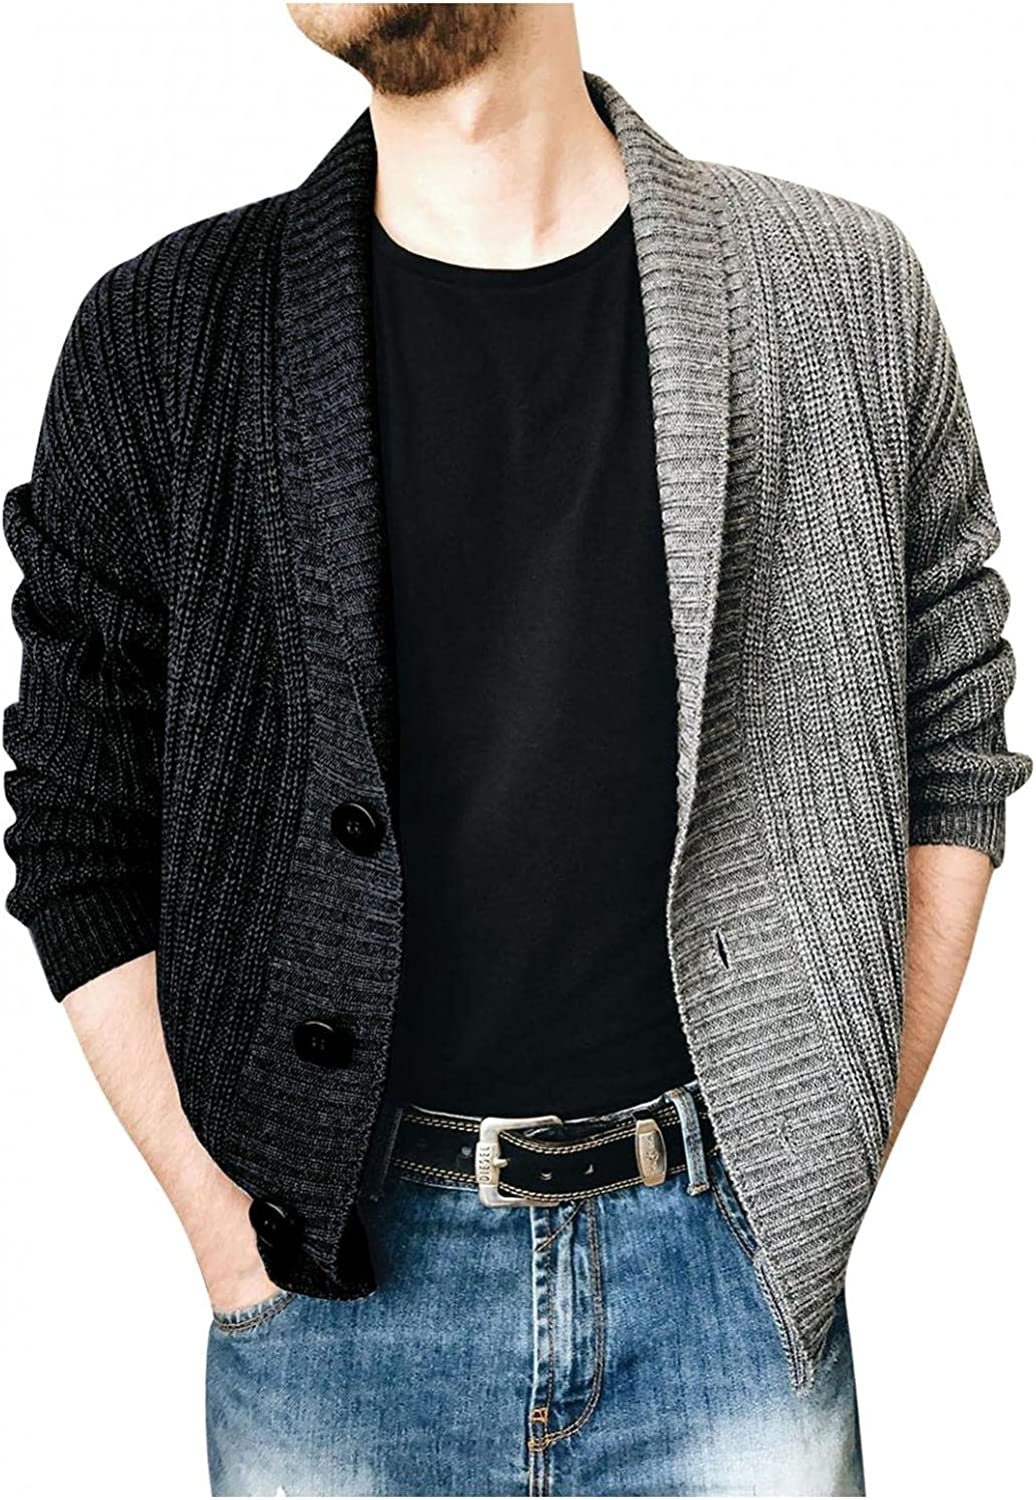 VEKDONE Mens Cable Knit Cardigan Sweater Casual Slim Fit Contrast Colors Stitching Lapel Thermal Button Down Closure